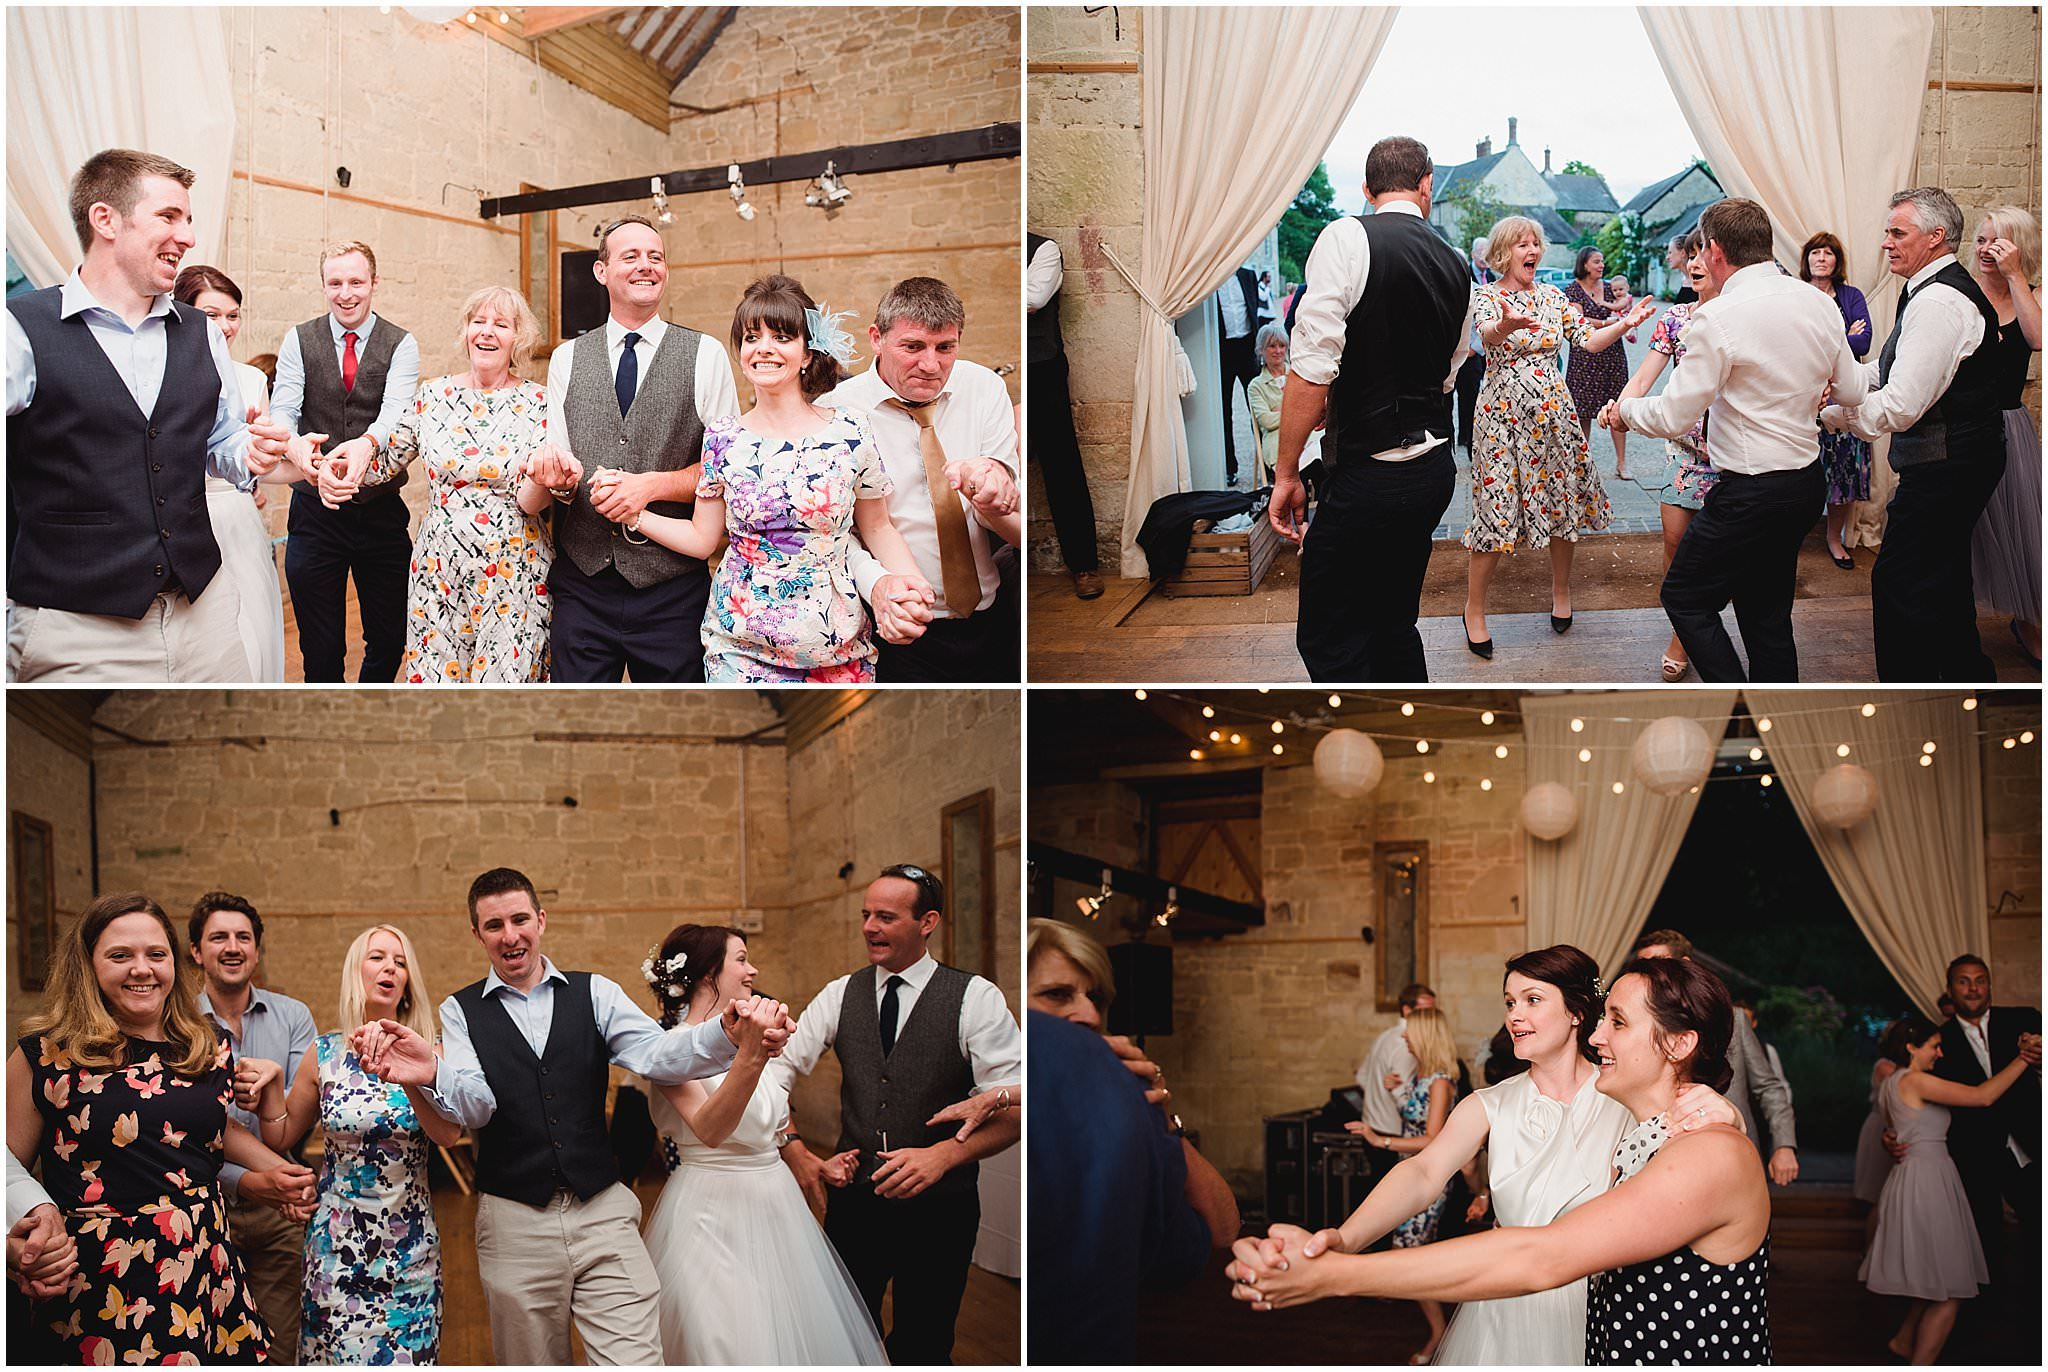 fay & tim wedding at ashley wood farm_0496